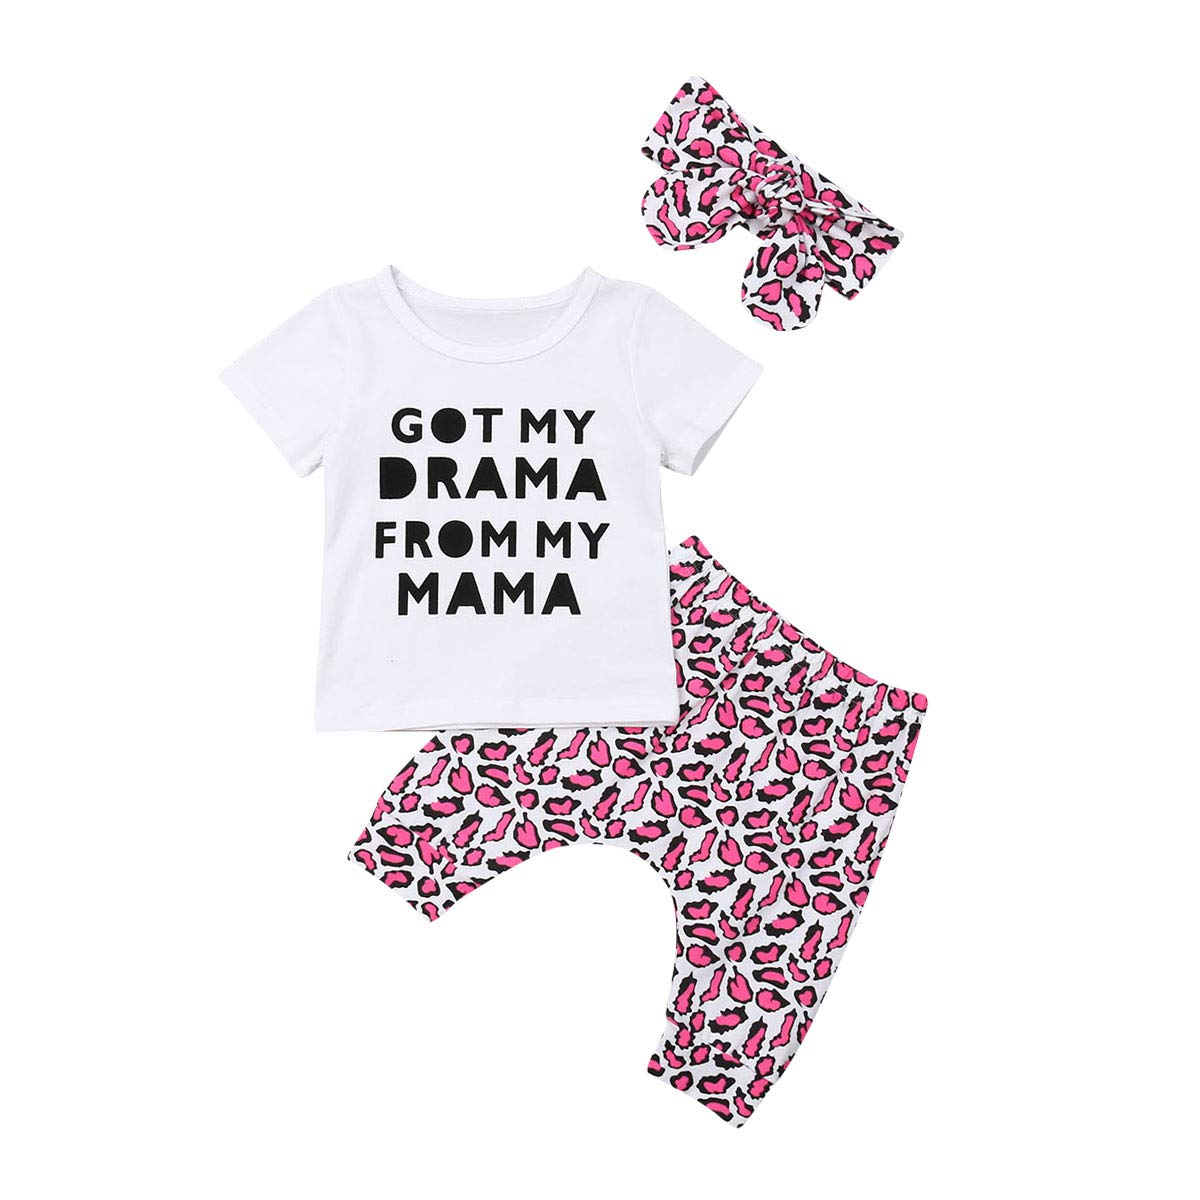 Toddler Baby Girl Outfits Set 3 Pieces Long Sleeve Letter T Shirt Long Trouser Headband Cotton Clothes Set for 0-24 Months